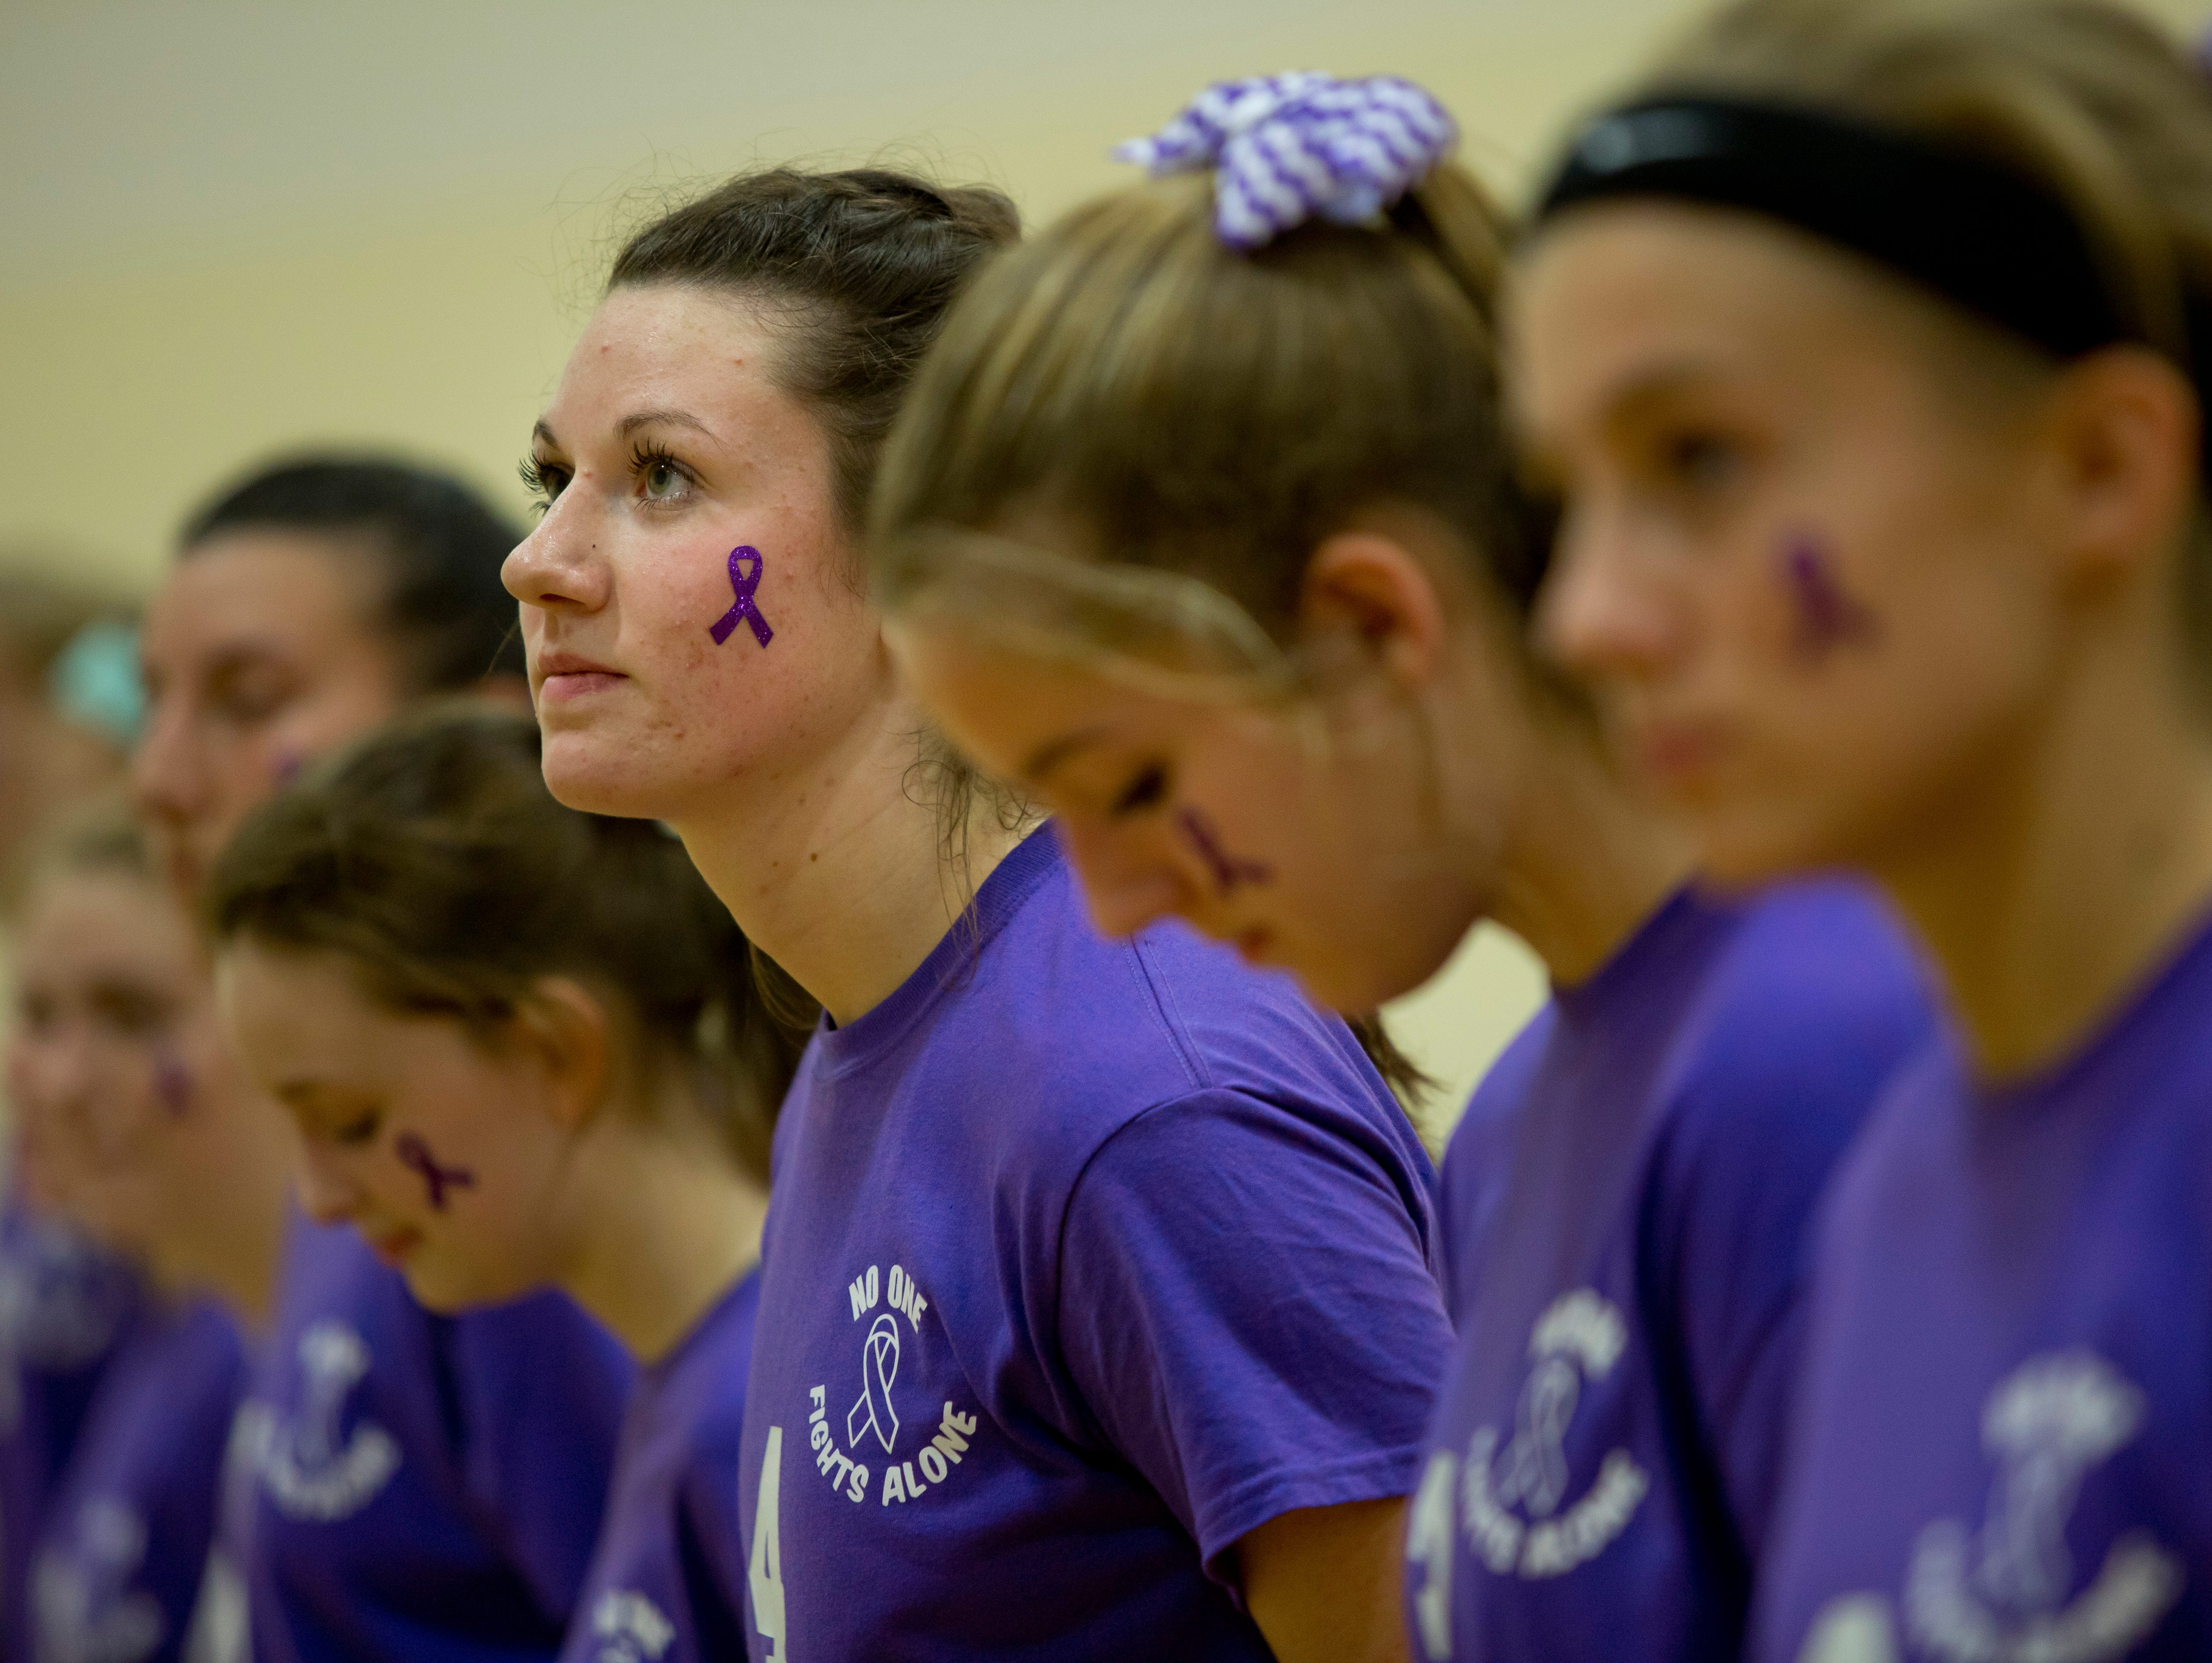 Cardinal Mooney senior Calista Chaltron looks up during the National Anthem during a volleyball game Wednesday, October 28, 2015 at Cardinal Mooney High School.